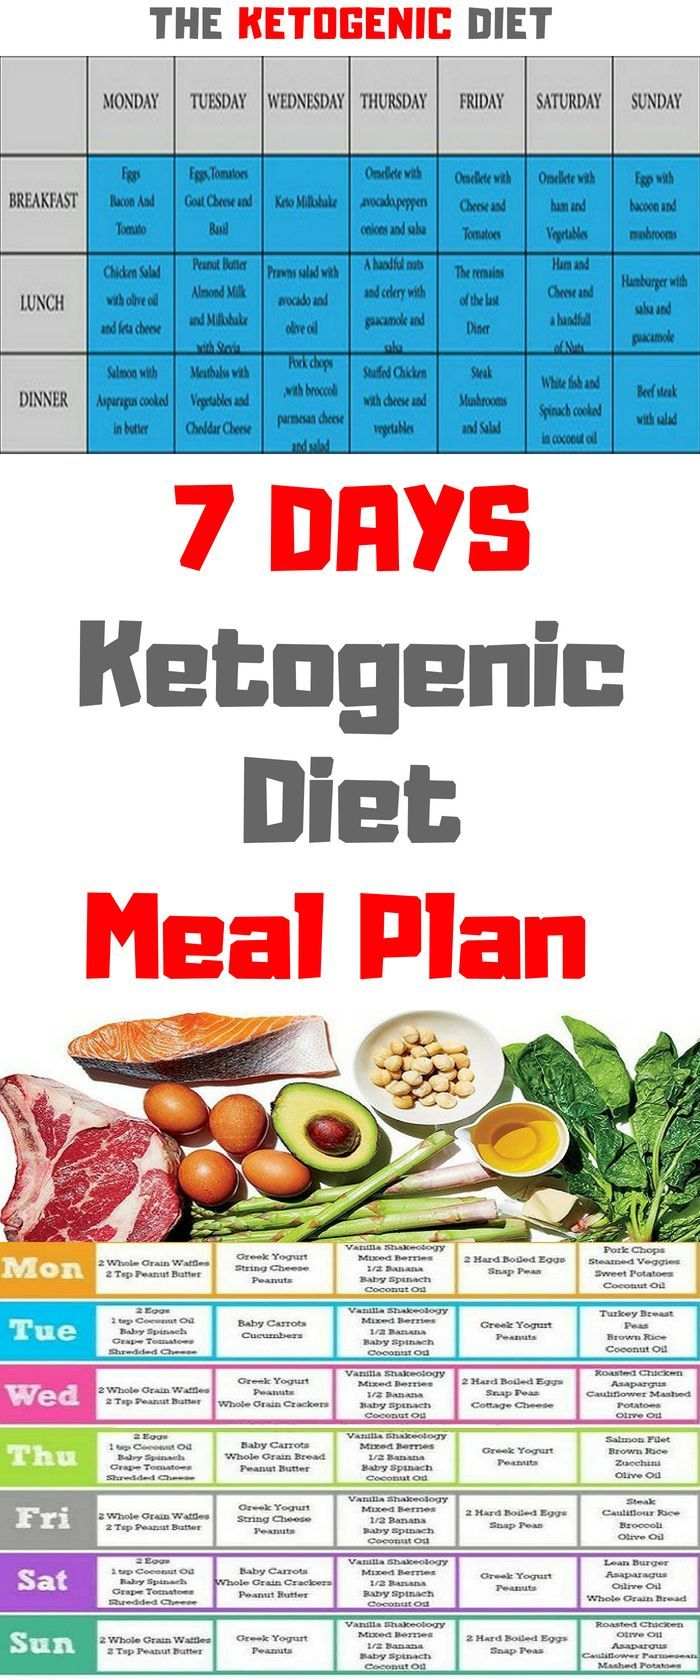 How Many Calories Should I Eat A Day To Lose 2 Pounds A Week Perfectketo Whatisketodiet Ketogenicdi 7 Day Diet Plan Ketogenic Diet Meal Plan Diet Meal Plans